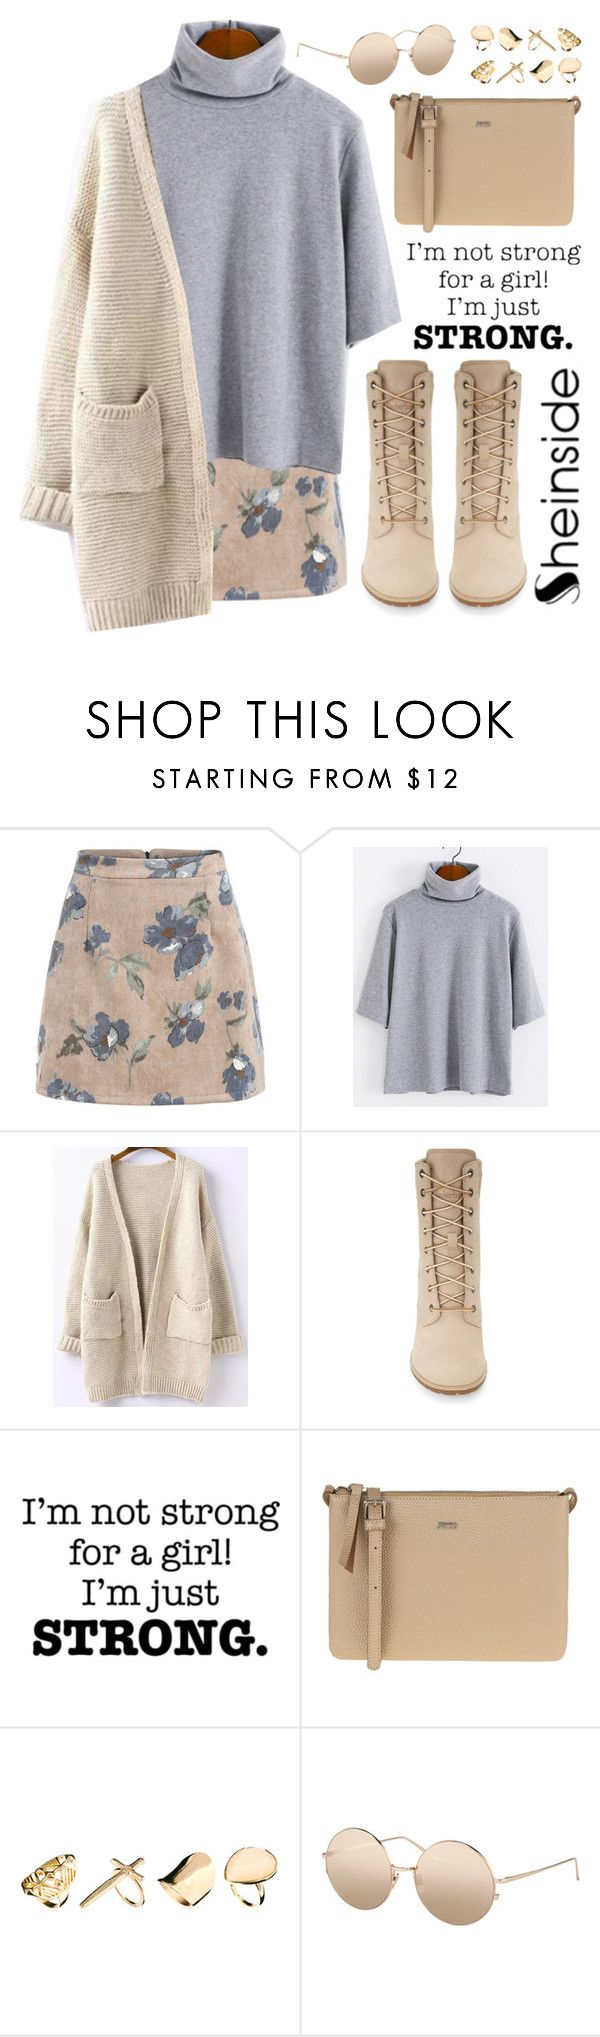 """""""SheIn 8"""" by scarlett-morwenna ❤ liked on Polyvore featuring Timberland, Parfois, New Look, Linda Farrow, modern and vintage"""